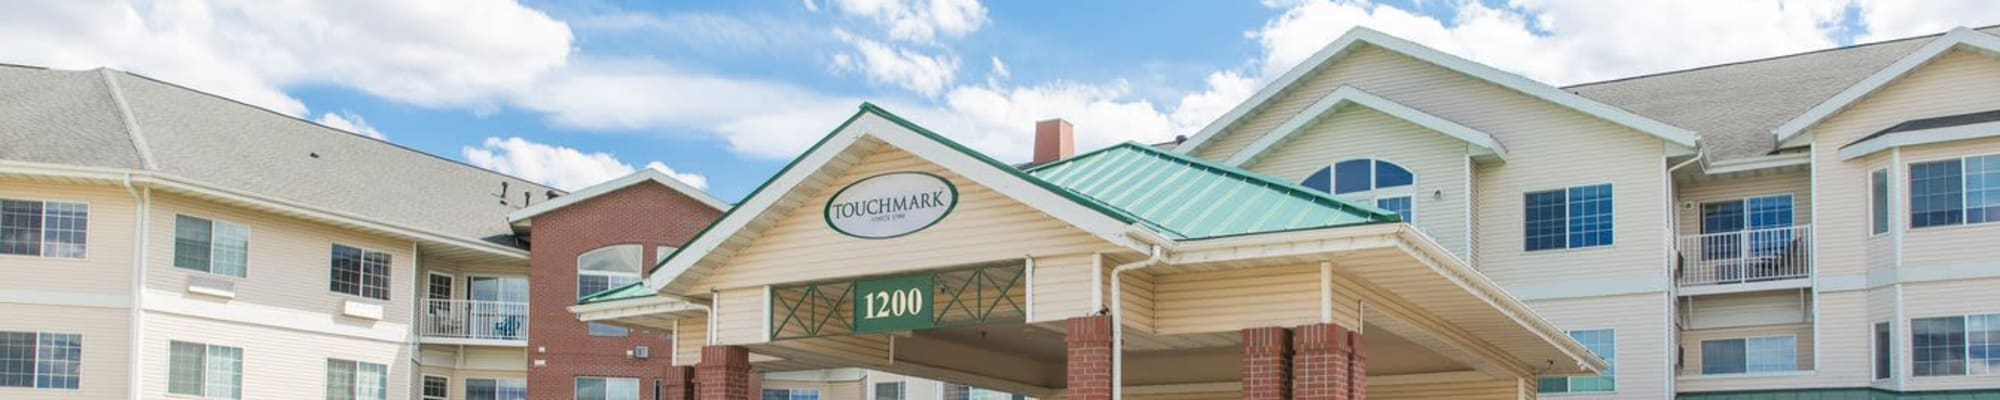 Touchmark Values & Mission at Touchmark at Harwood Groves in Fargo, North Dakota